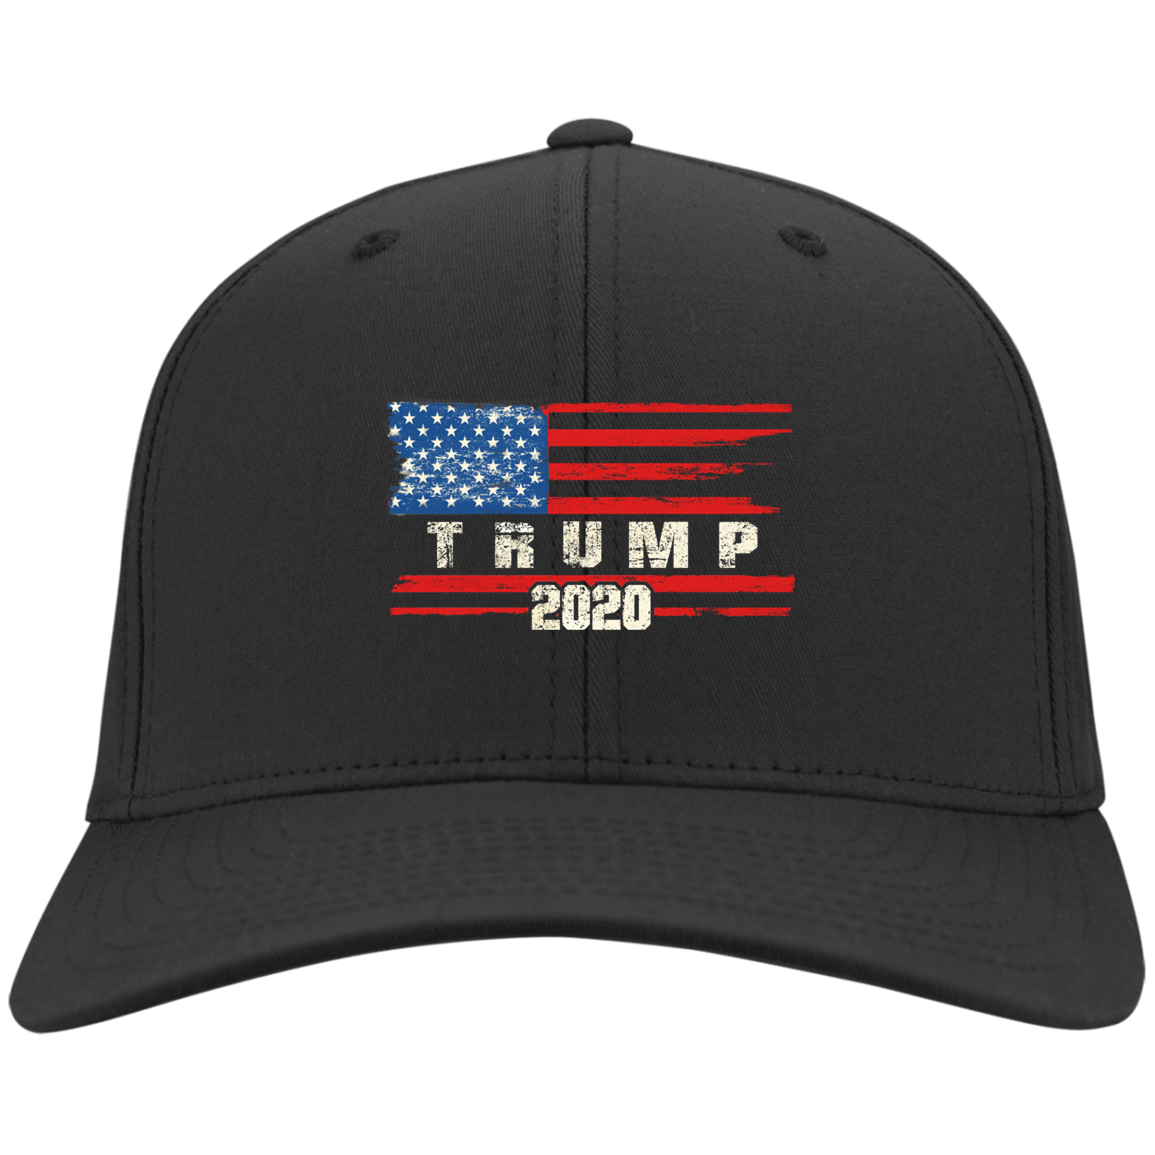 99b3431b0 President Donald Trump 2020 Keep America Great Again Presidential Election  Campaign MAGA Embroidered USA Hat Cap - CubeBik ™